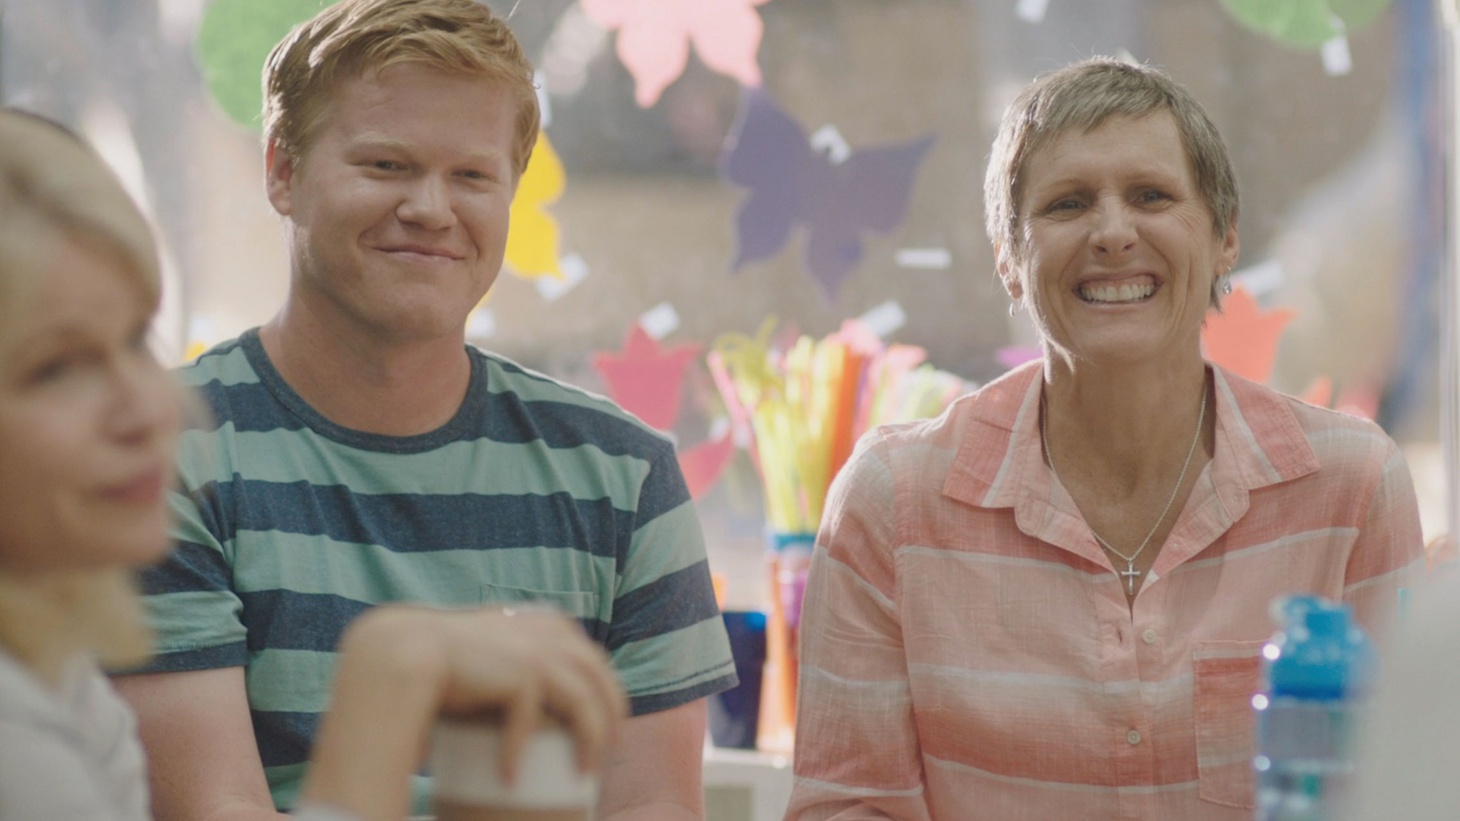 Actress Molly Shannon discusses her departure from comedy in emotional new film Other People.